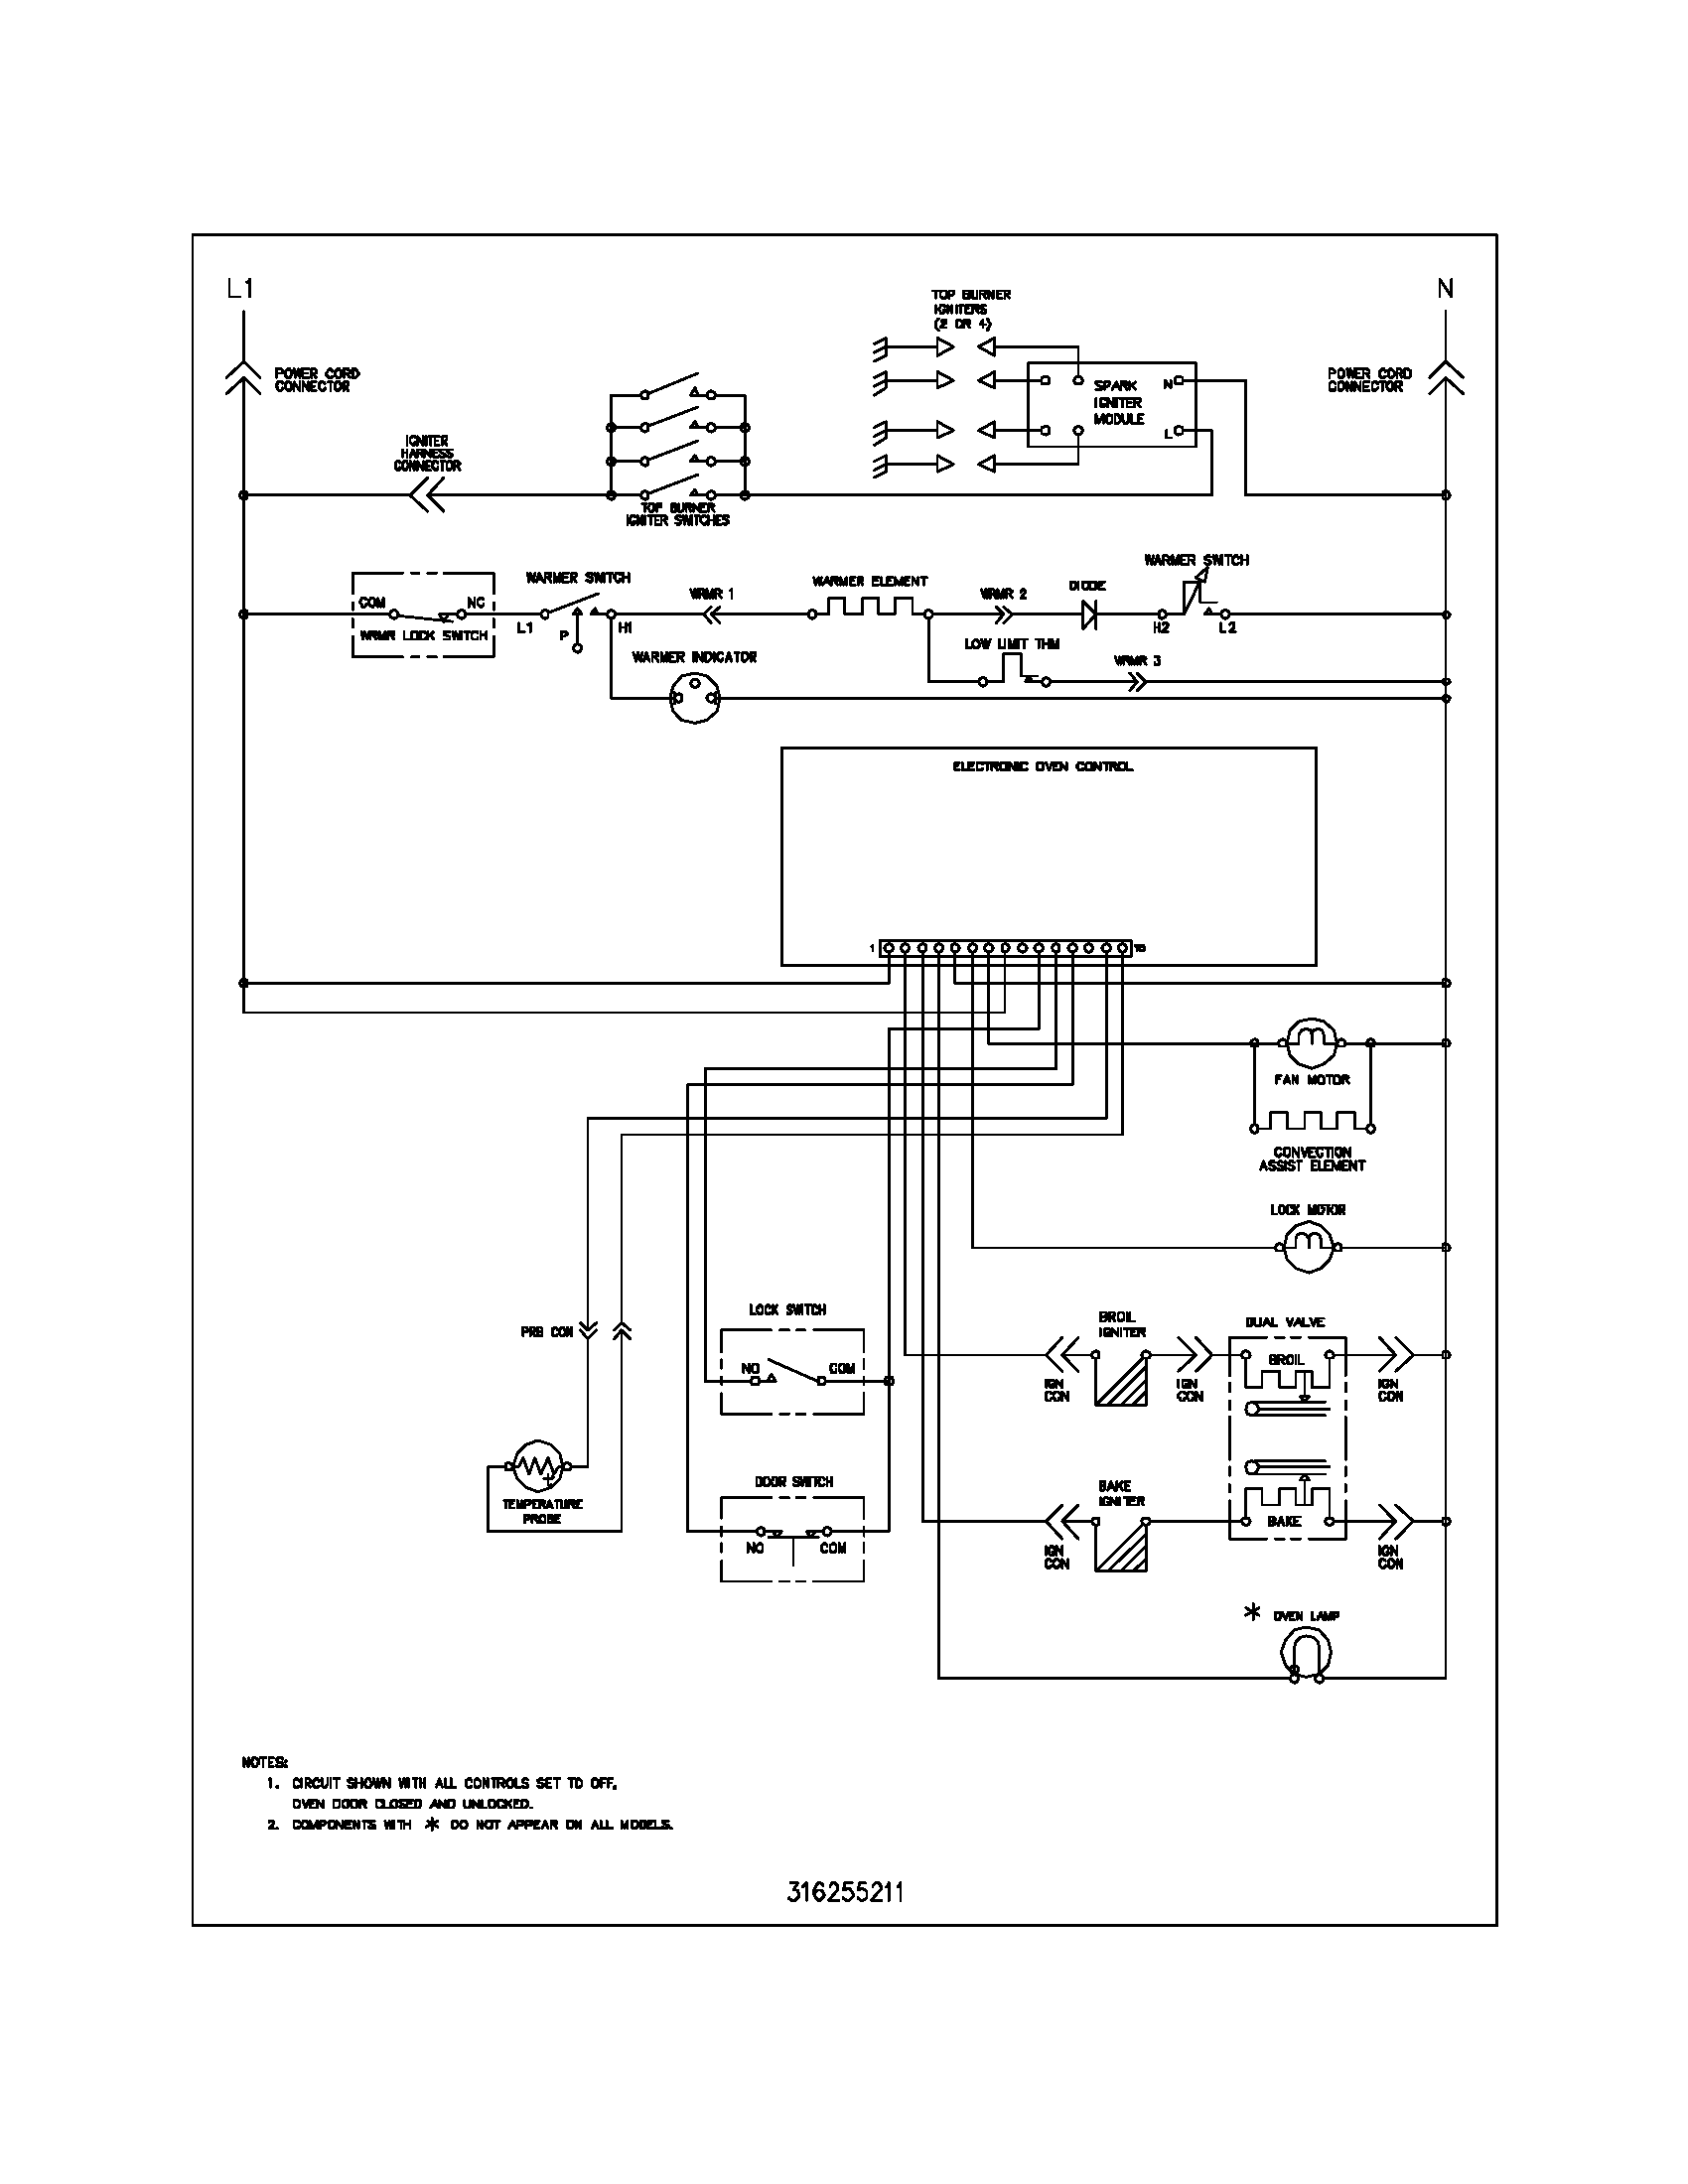 wiring schematic parts frigidaire plgf389ccc gas range timer stove clocks and appliance freezer room wiring diagram at mifinder.co